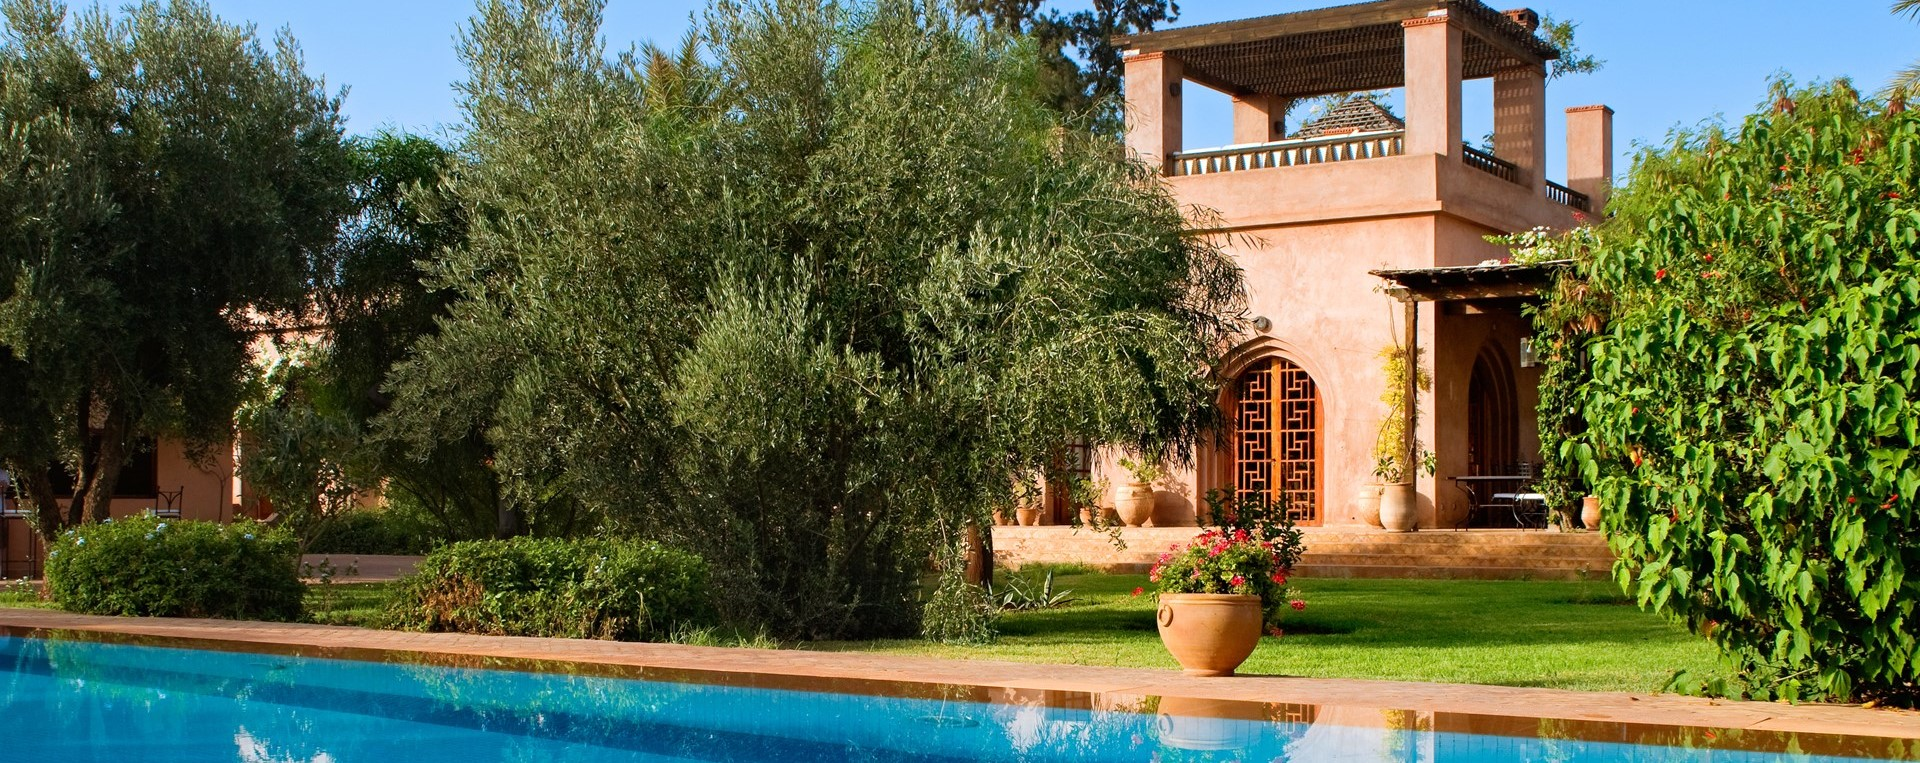 large-family-pool-villa-marrakech